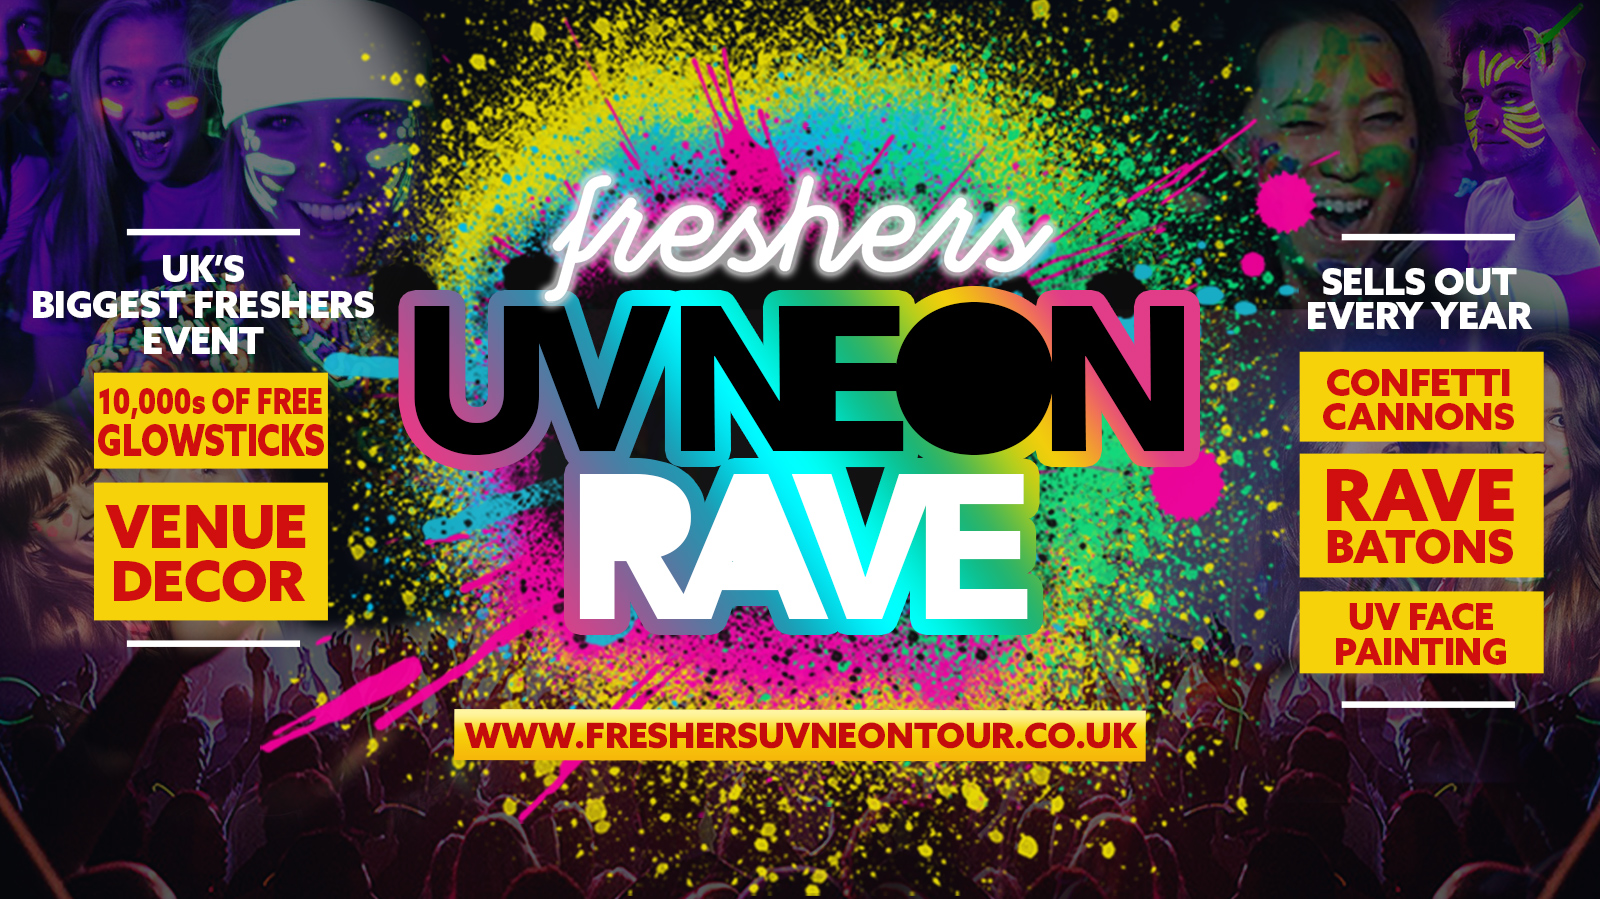 Plymouth Freshers UV Neon Rave | Plymouth Freshers 2021